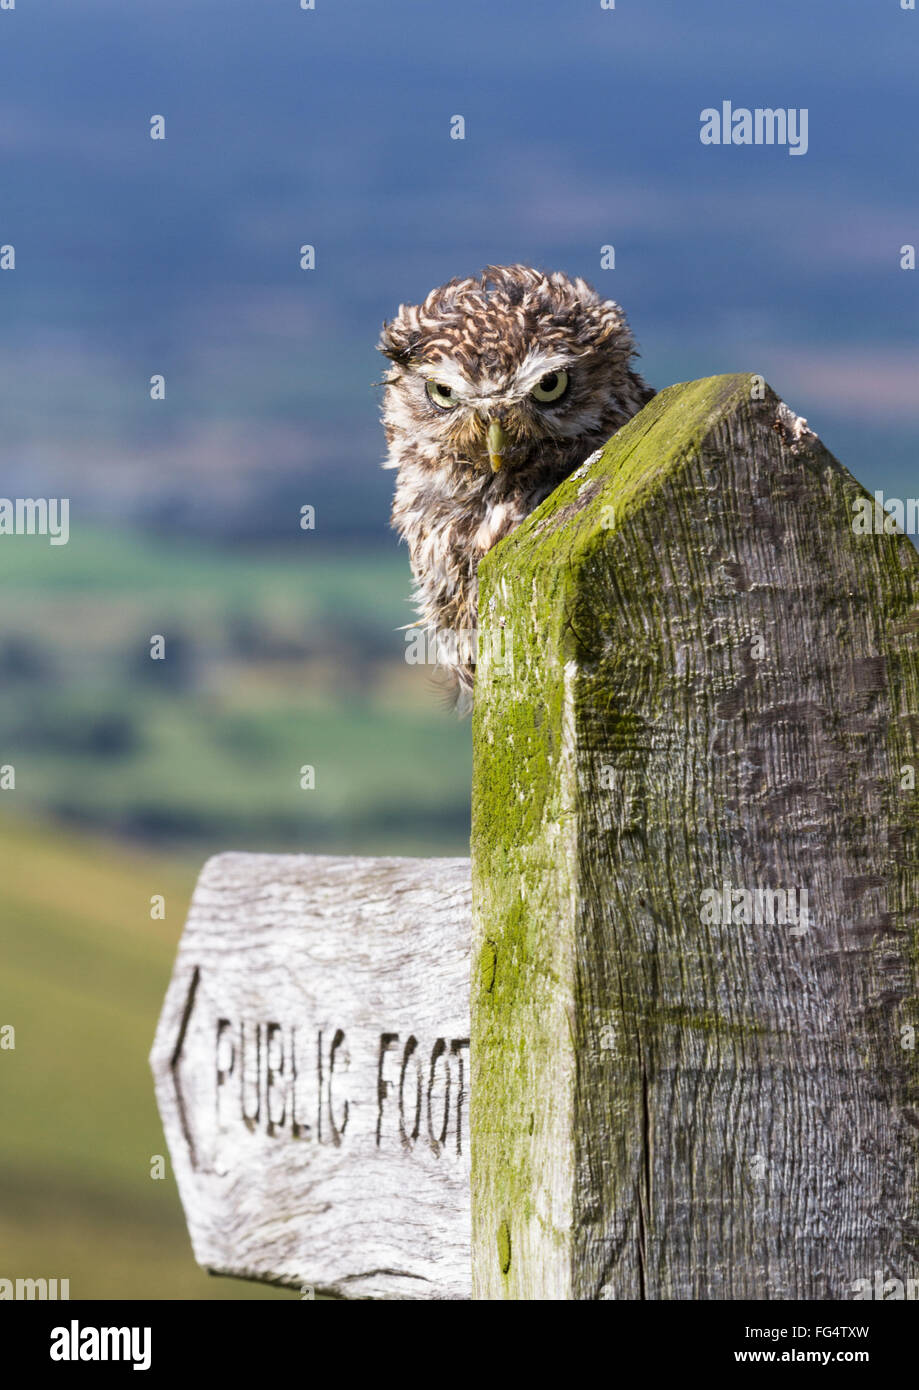 Little owl (Athene noctua) sat on a 'public footpath' signpost looking angry an scruffy, countryside background. Stock Photo